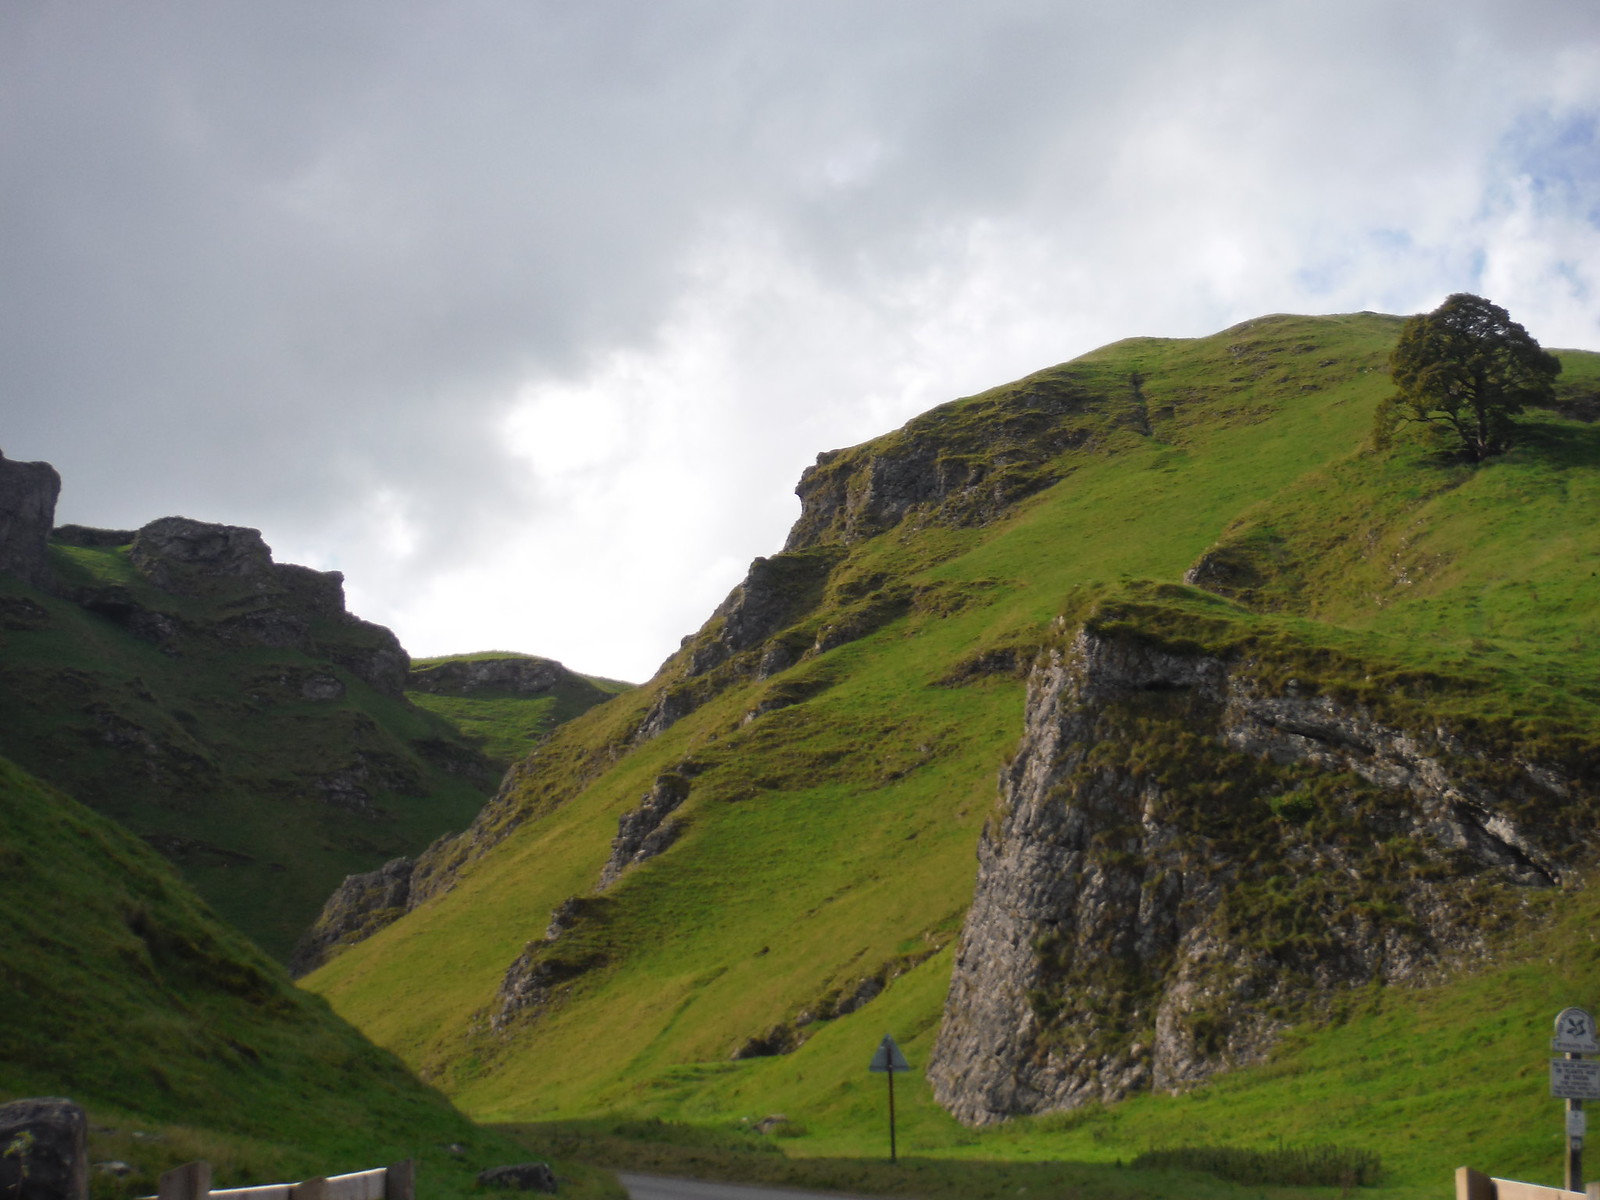 Winnats Pass, Lower End SWC Walk 302 - Bamford to Edale (via Win Hill and Great Ridge) [Castleton Alternatives]